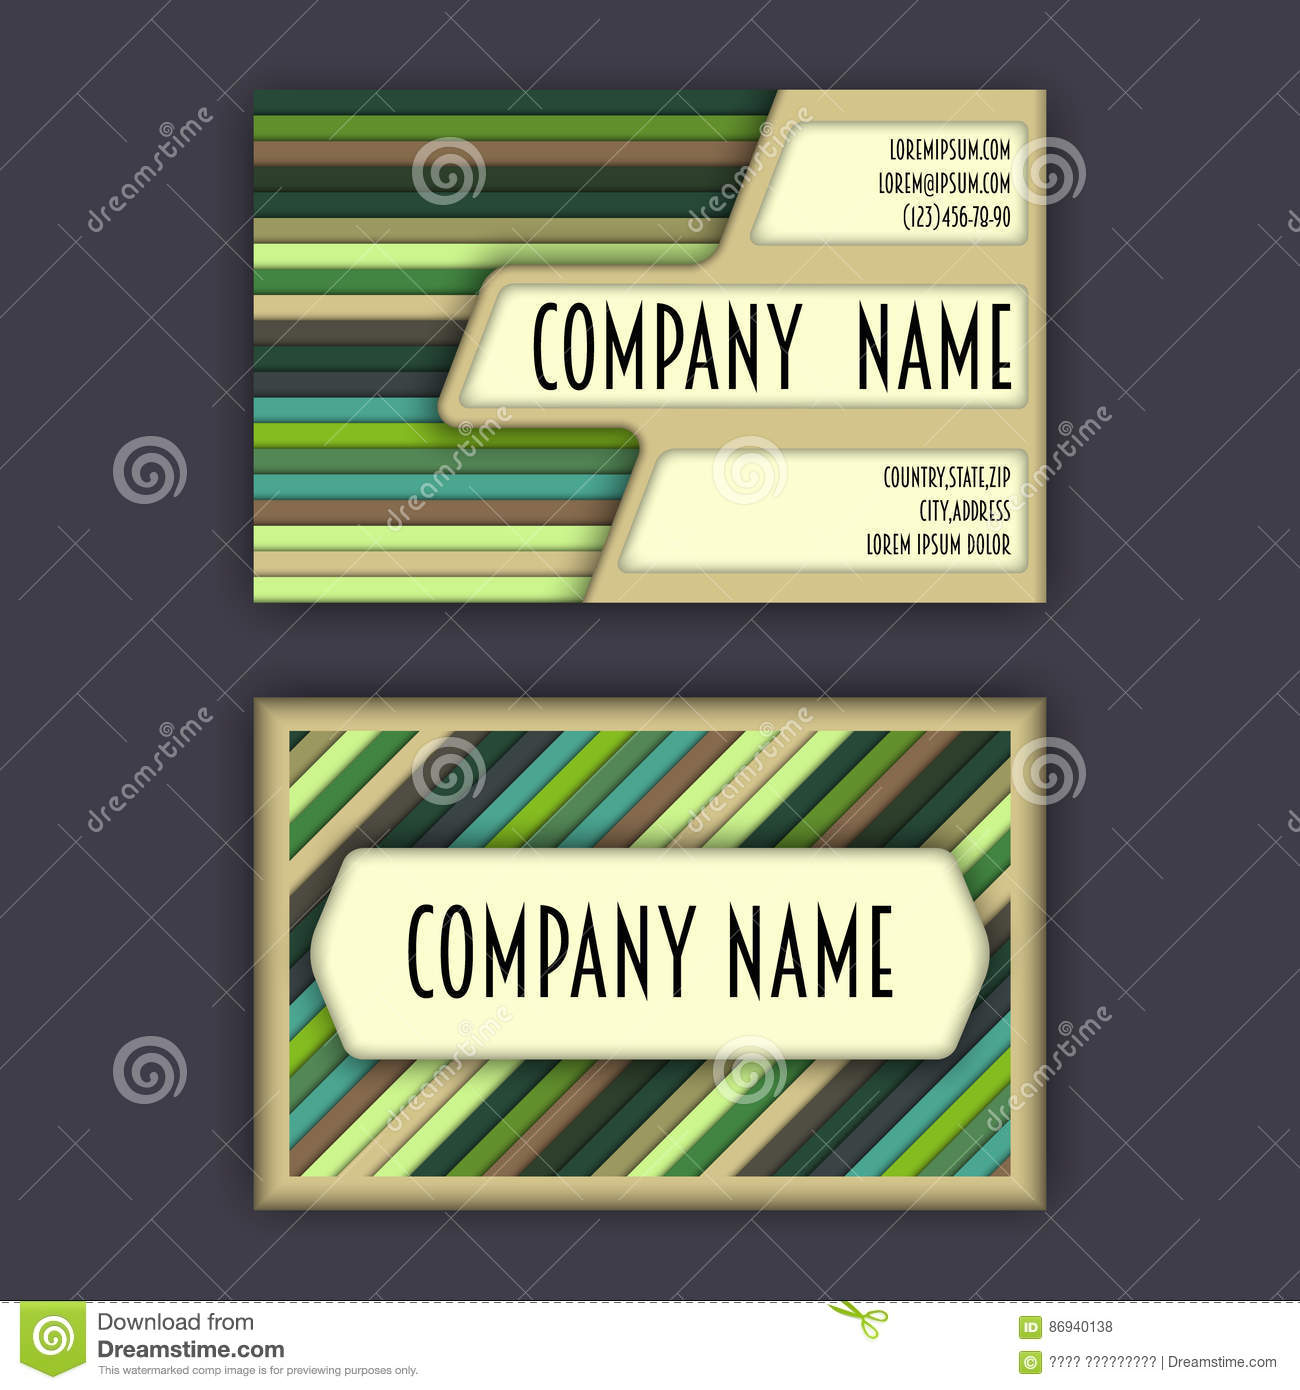 Business card template with 3d paper colorful lines stock download business card template with 3d paper colorful lines stock illustration illustration of geometry flashek Images